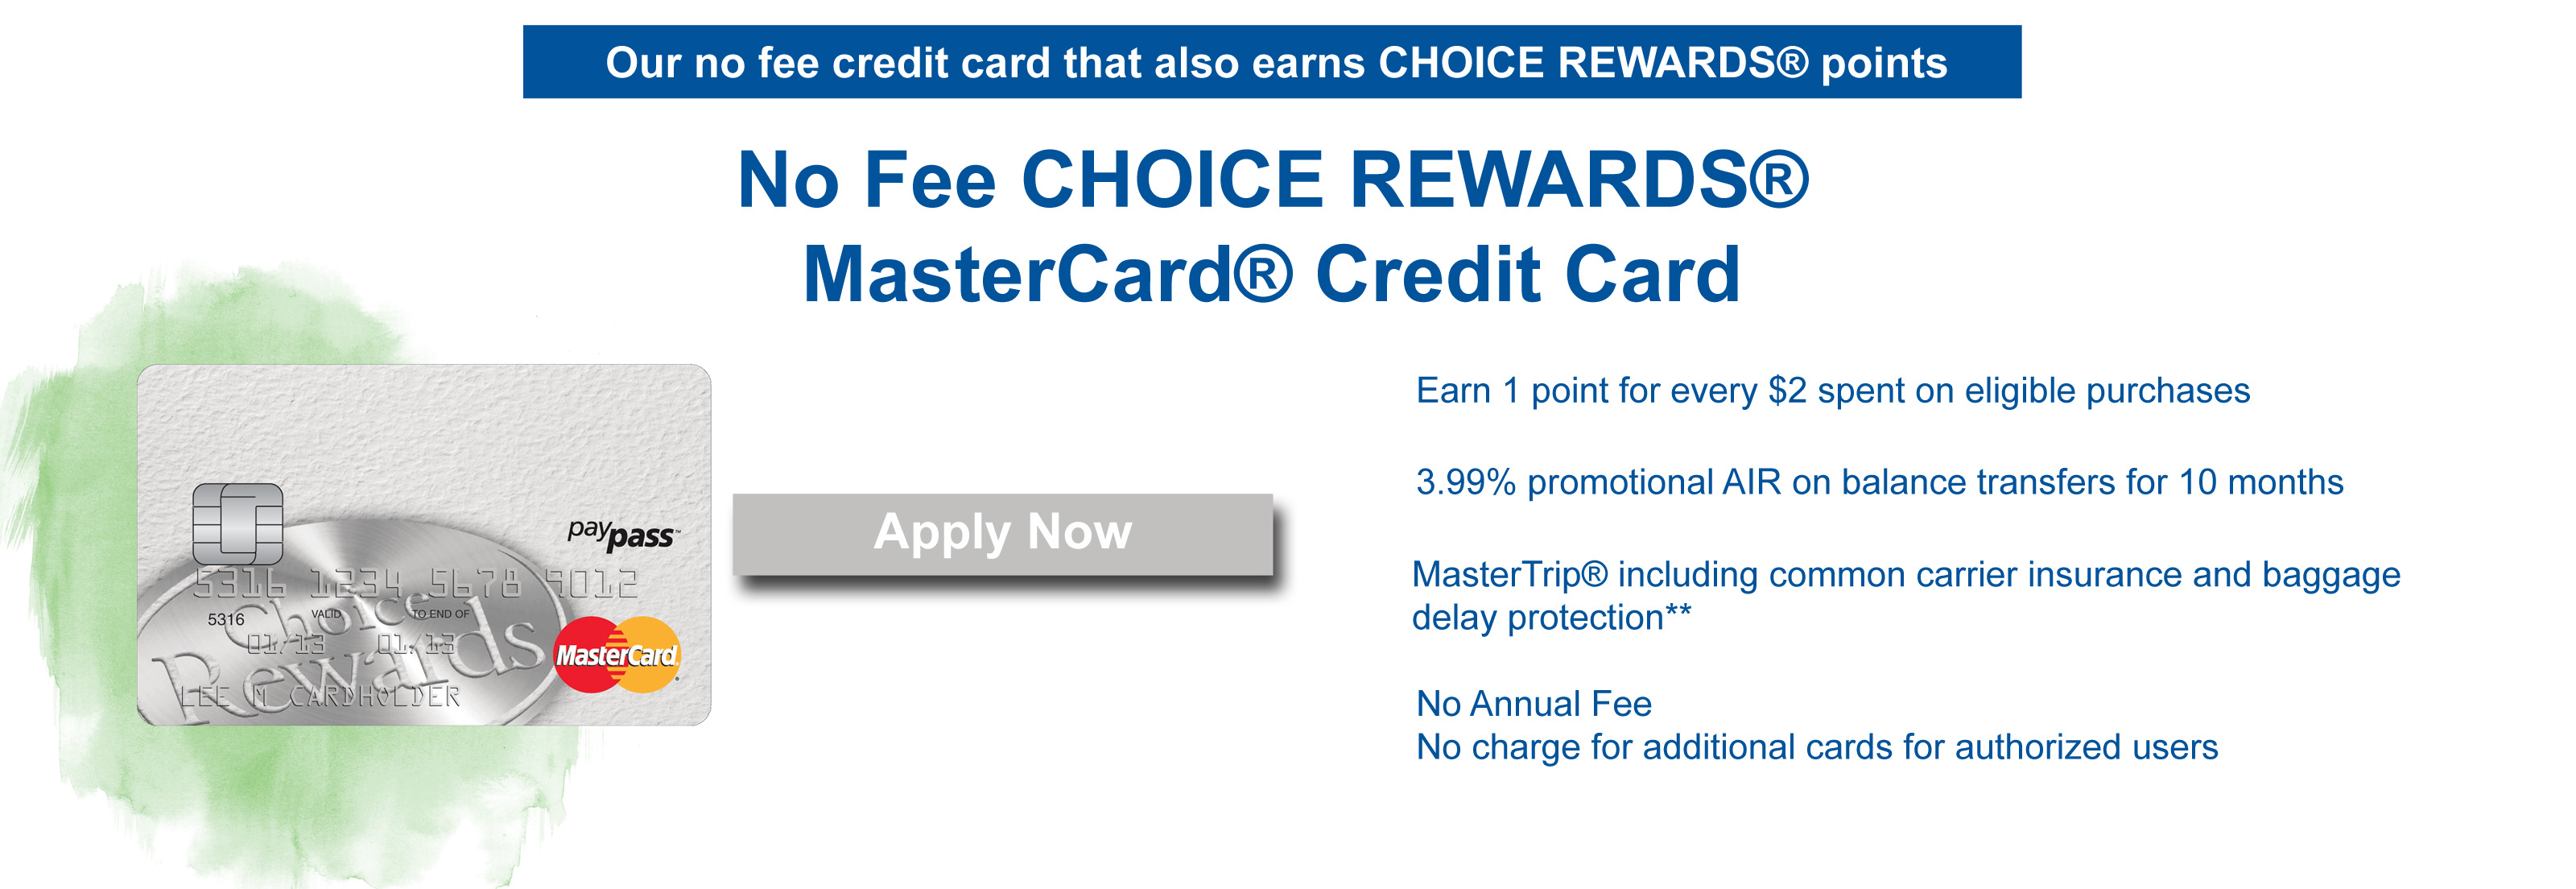 no fee choice rewards